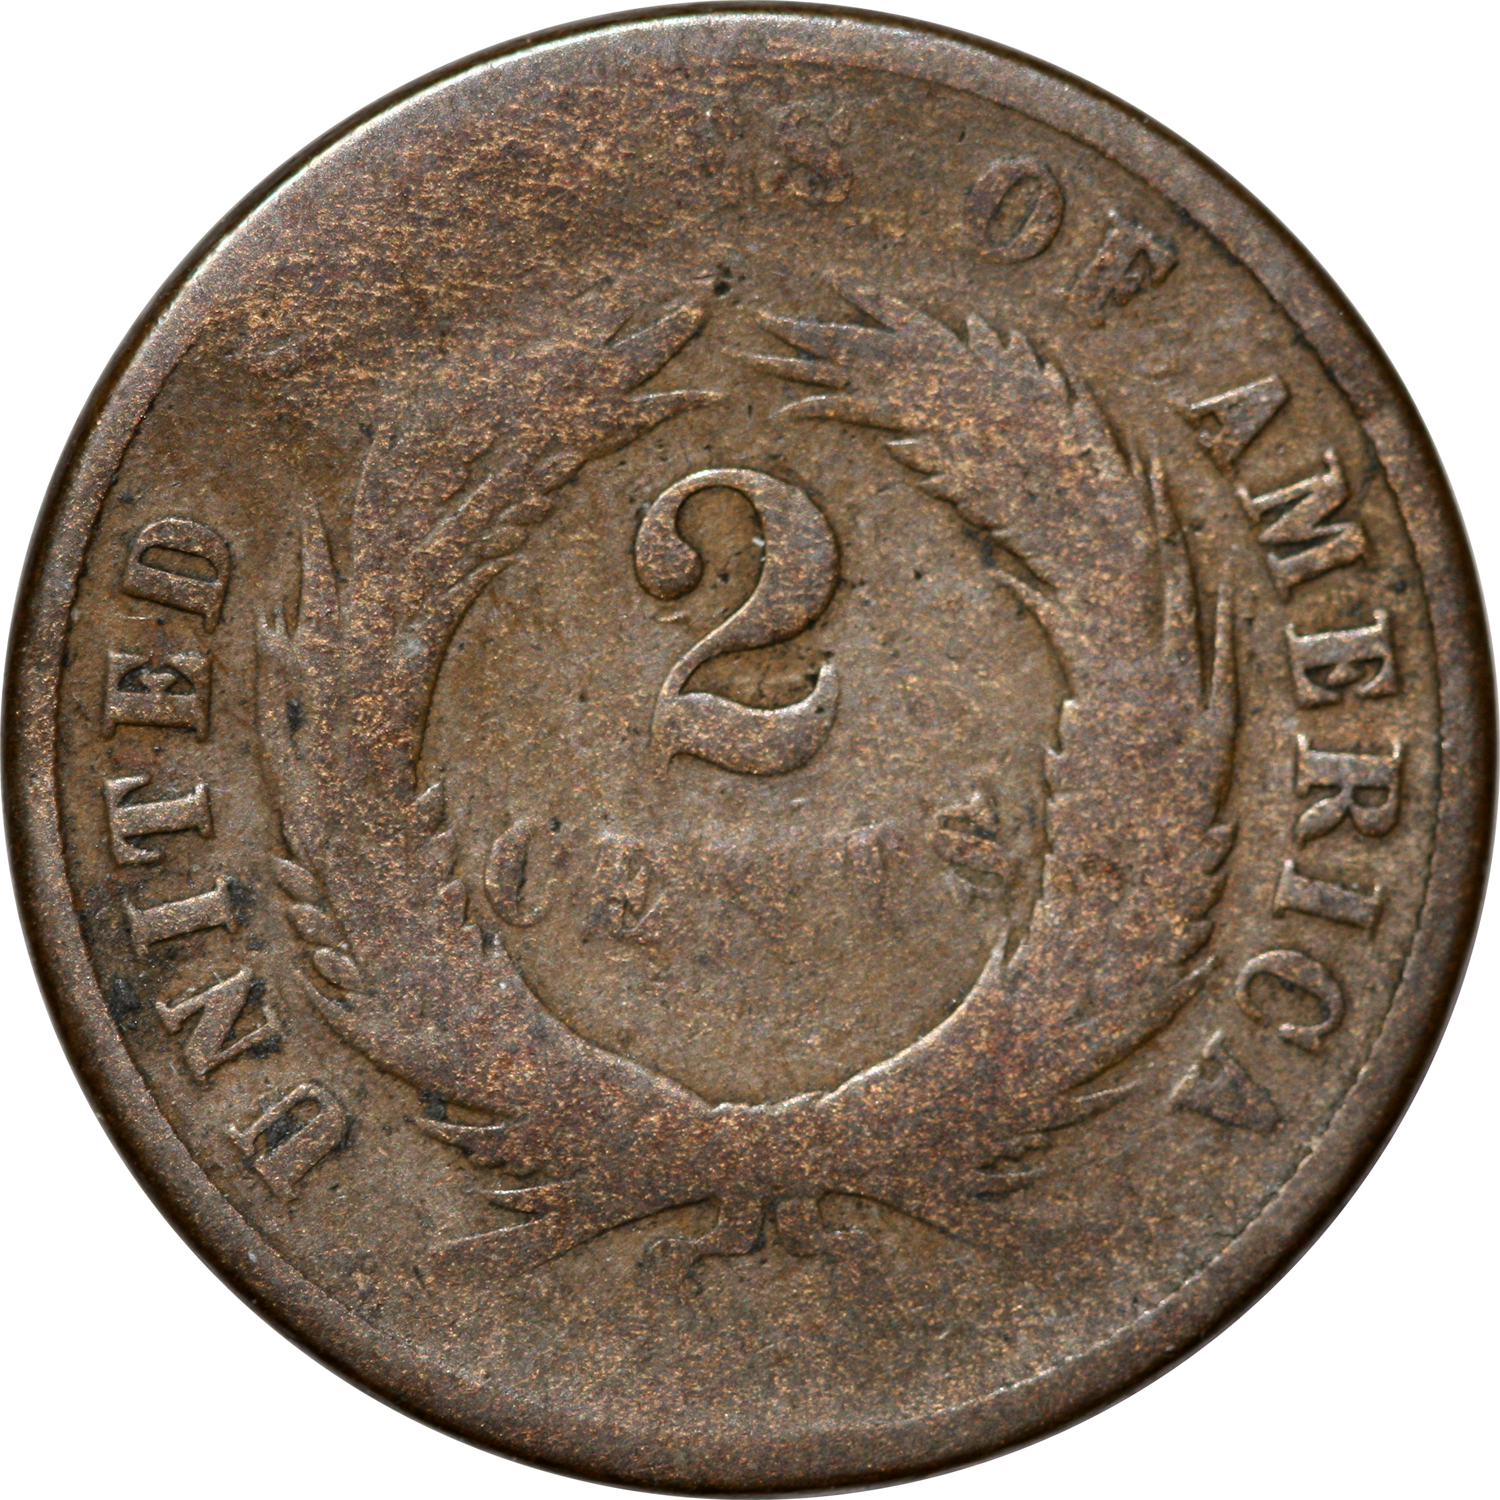 1871 2 cent coin value